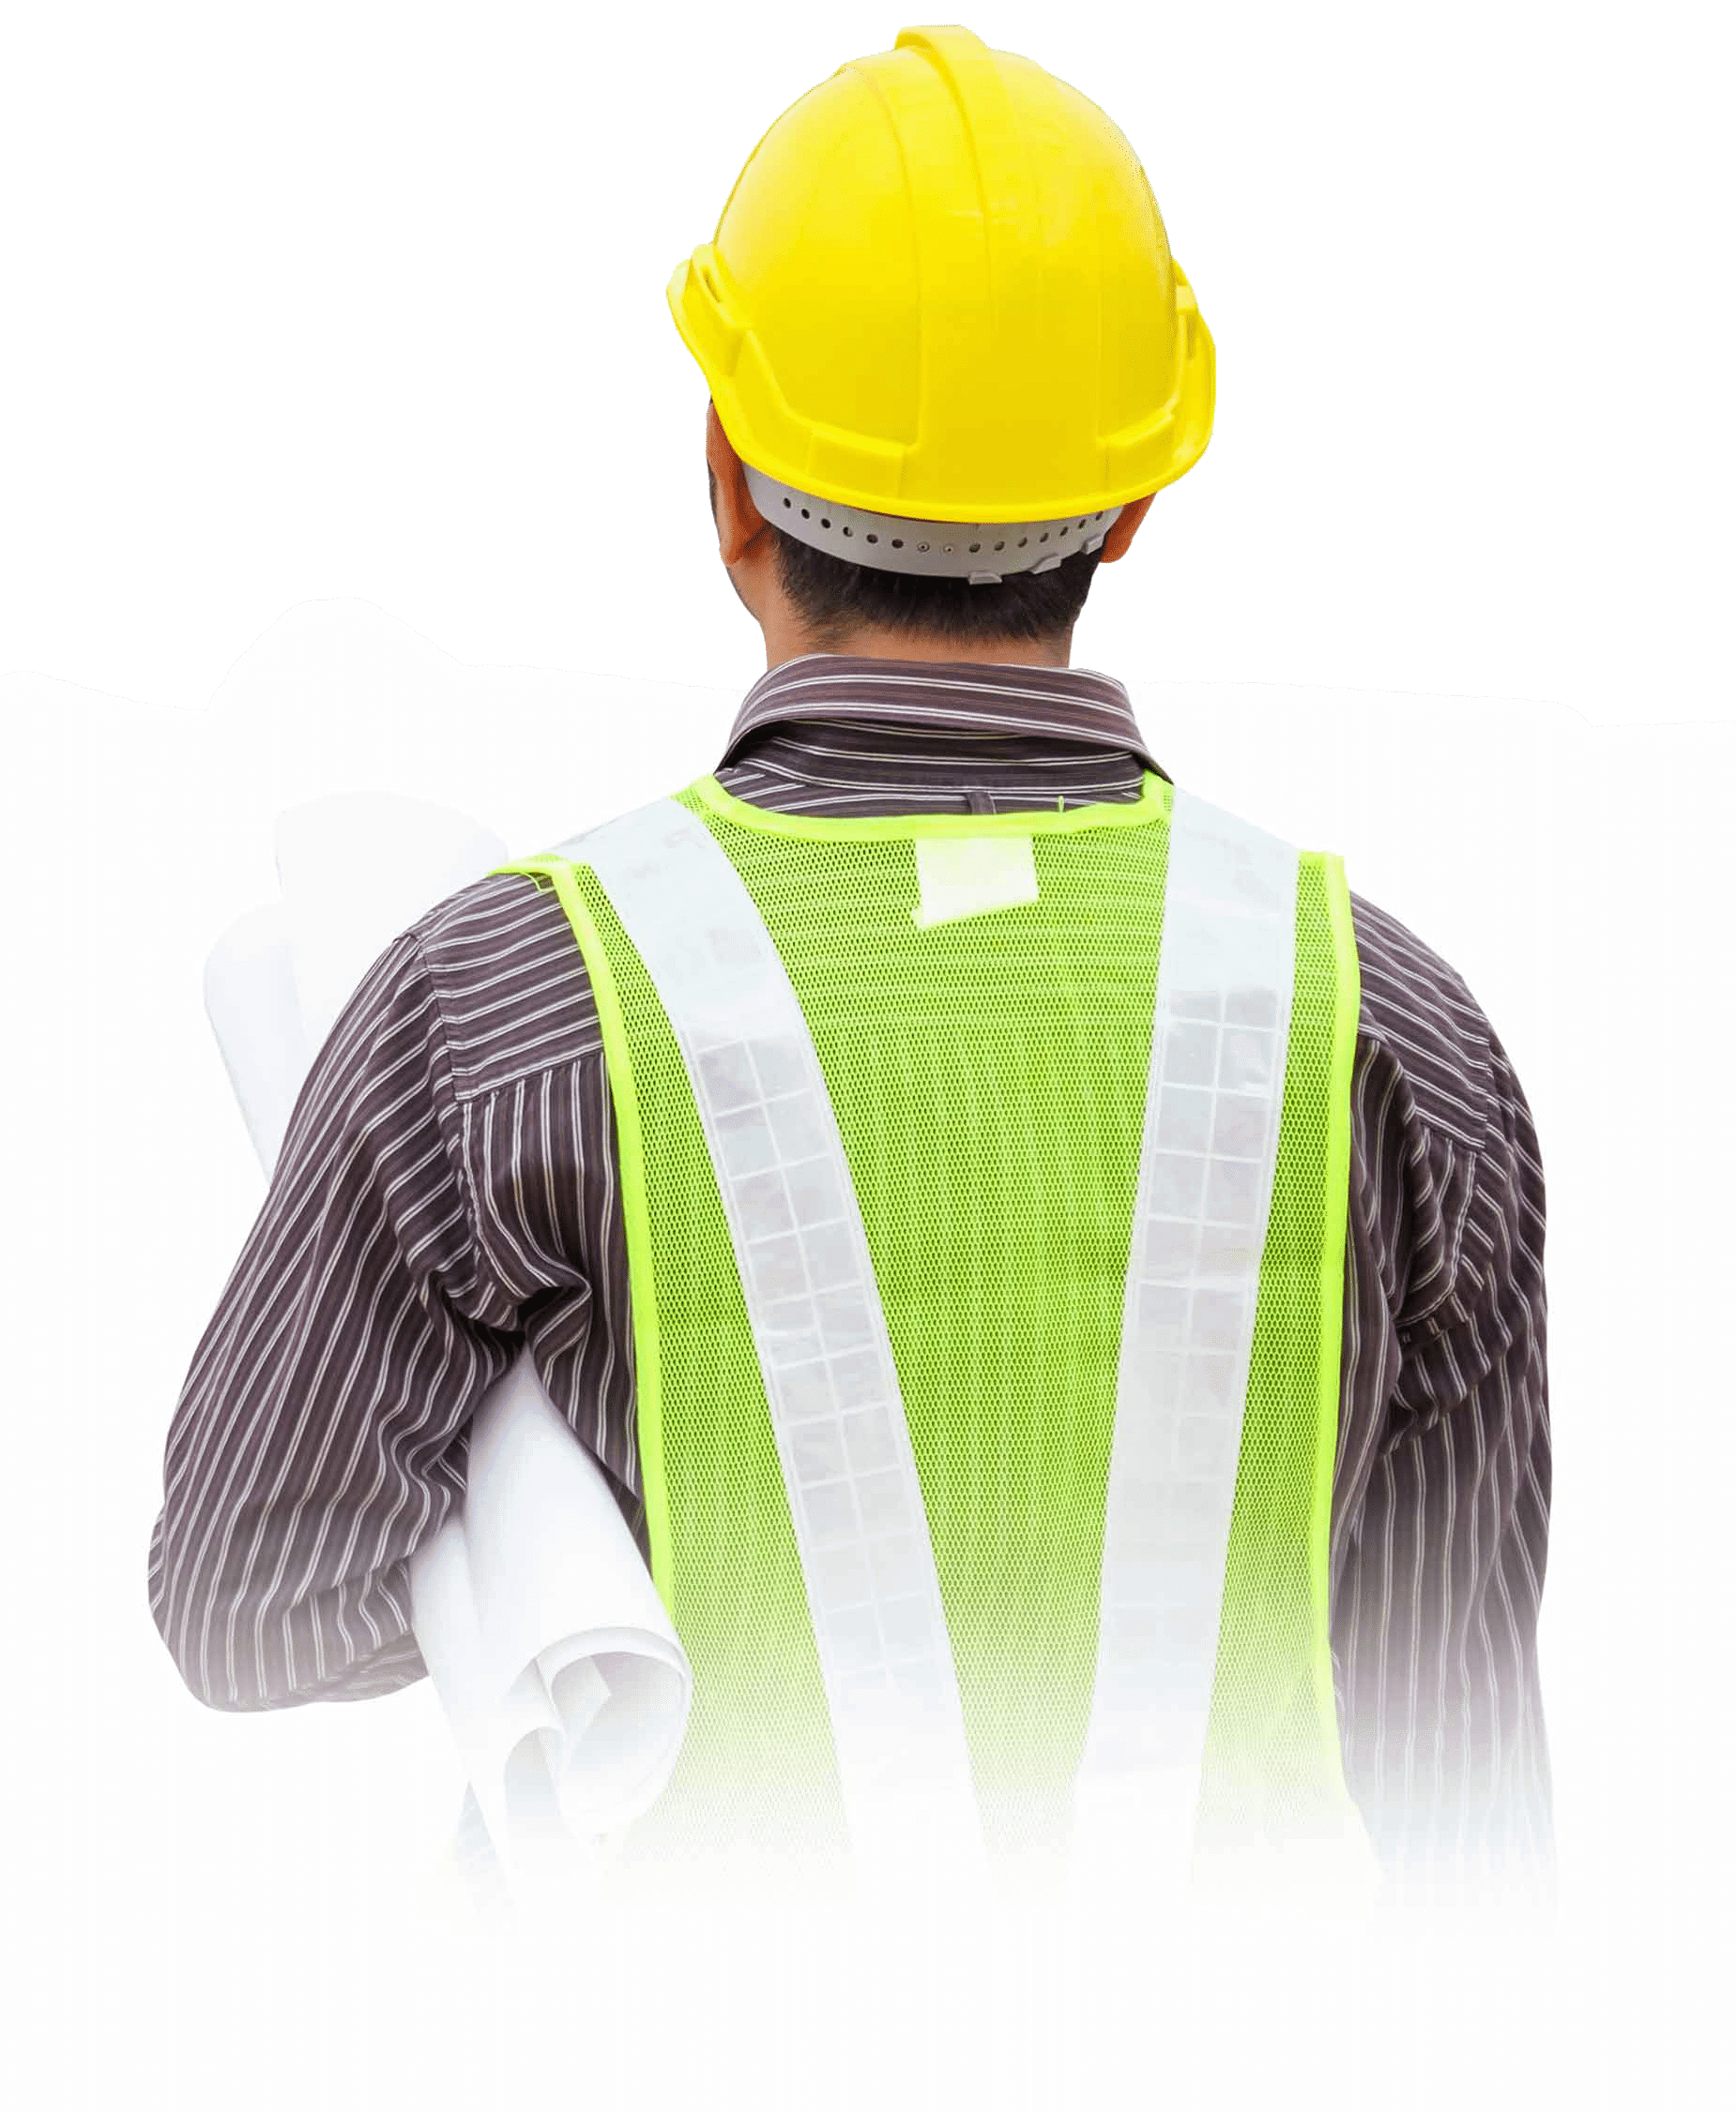 About Joseph James Roofing Company